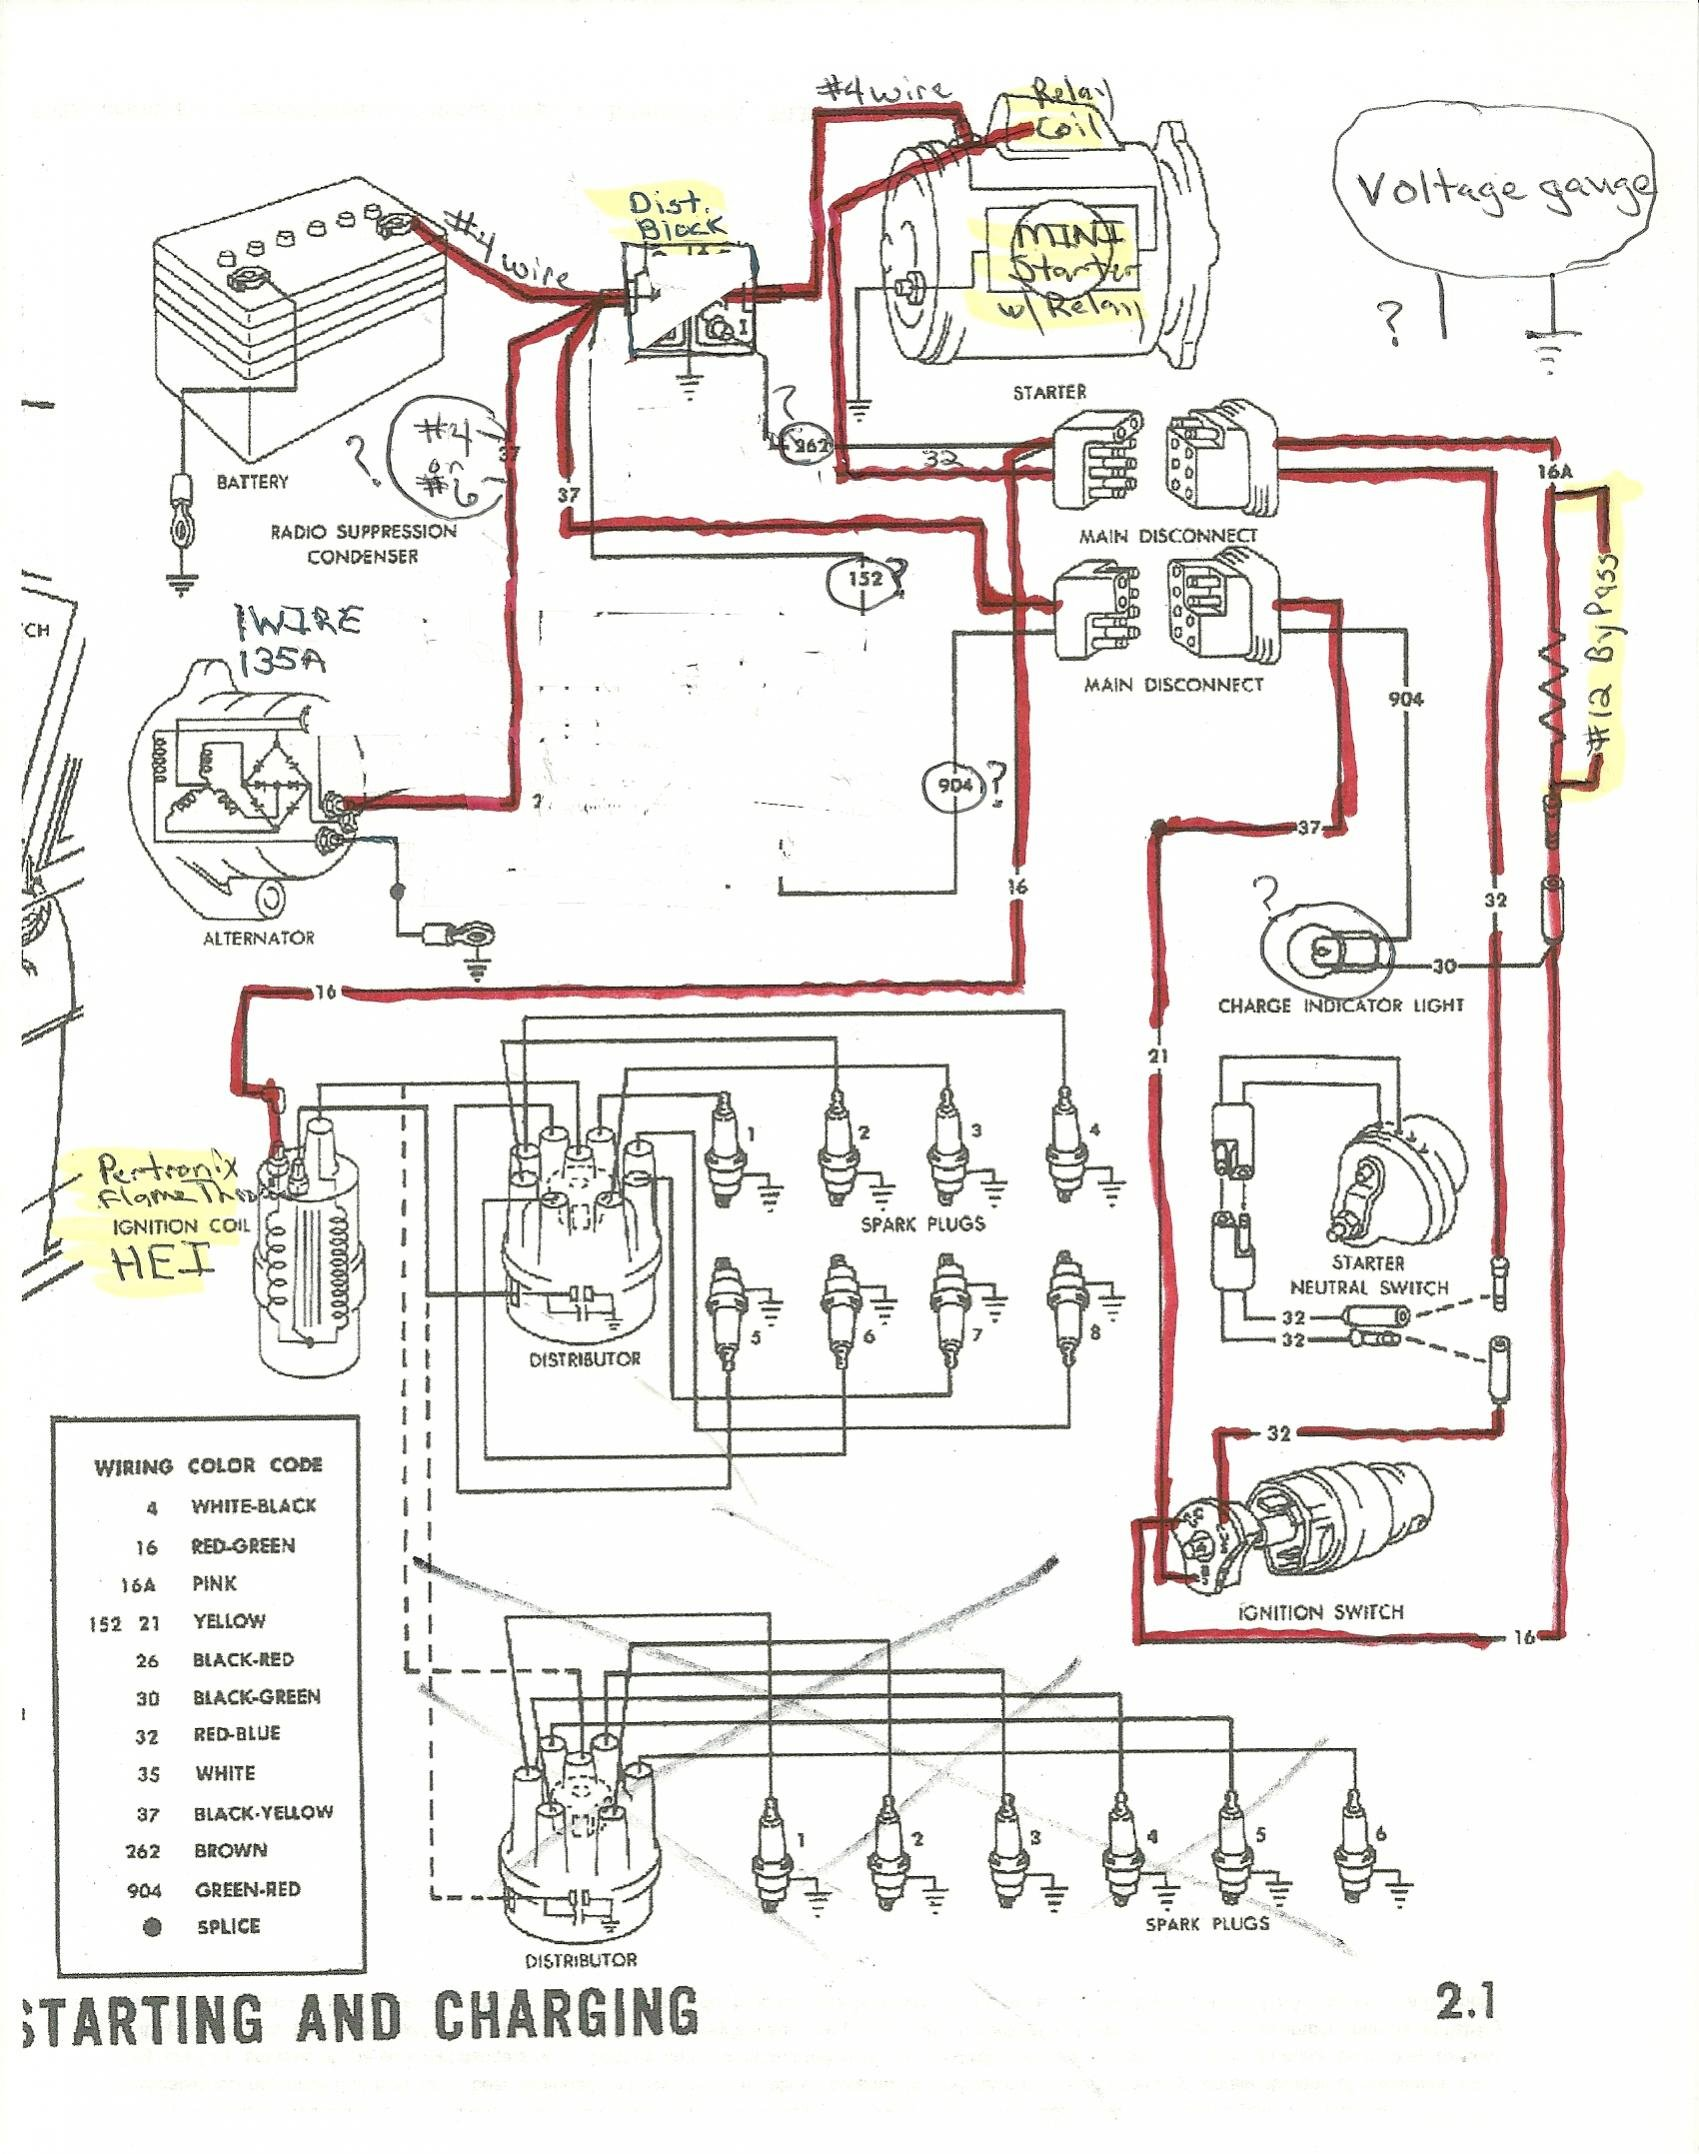 hight resolution of dodge voltage regulator wiring diagram wiring library 1965 alternator starter and distributor wiring ford mustang